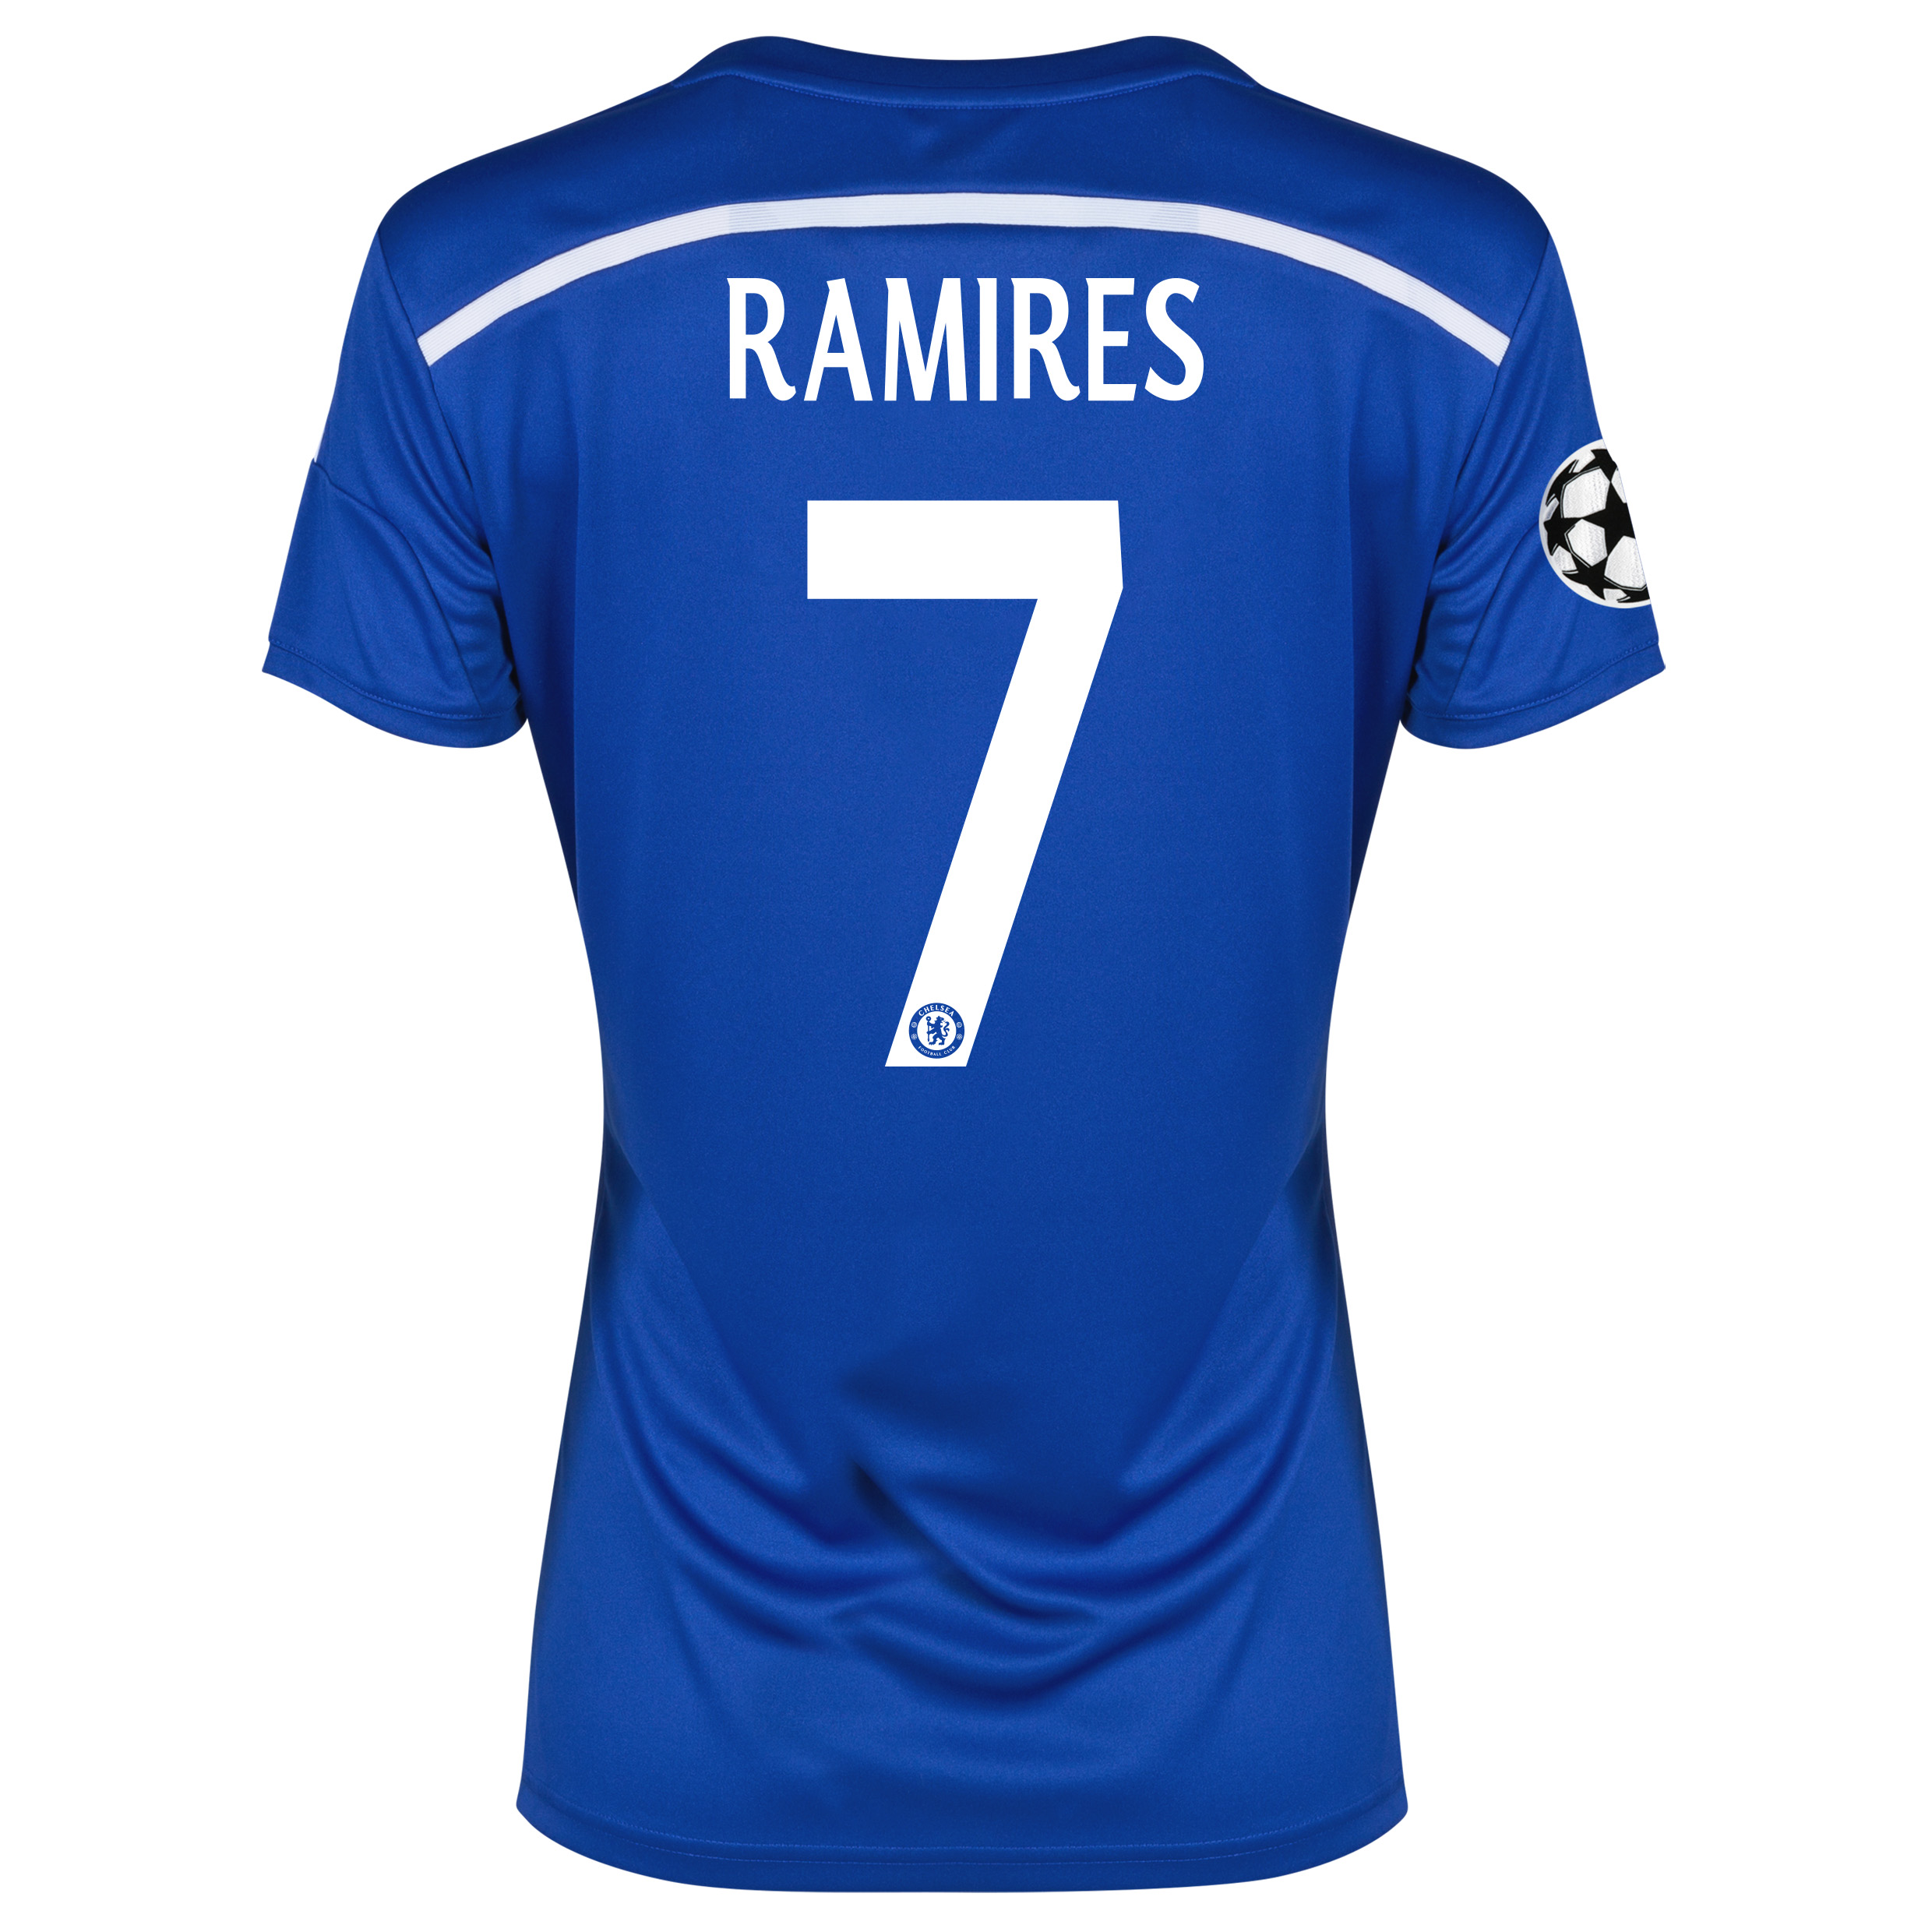 Chelsea UEFA Champions League Home Shirt 2014/15 - Womens Blue with Ramires 7 printing